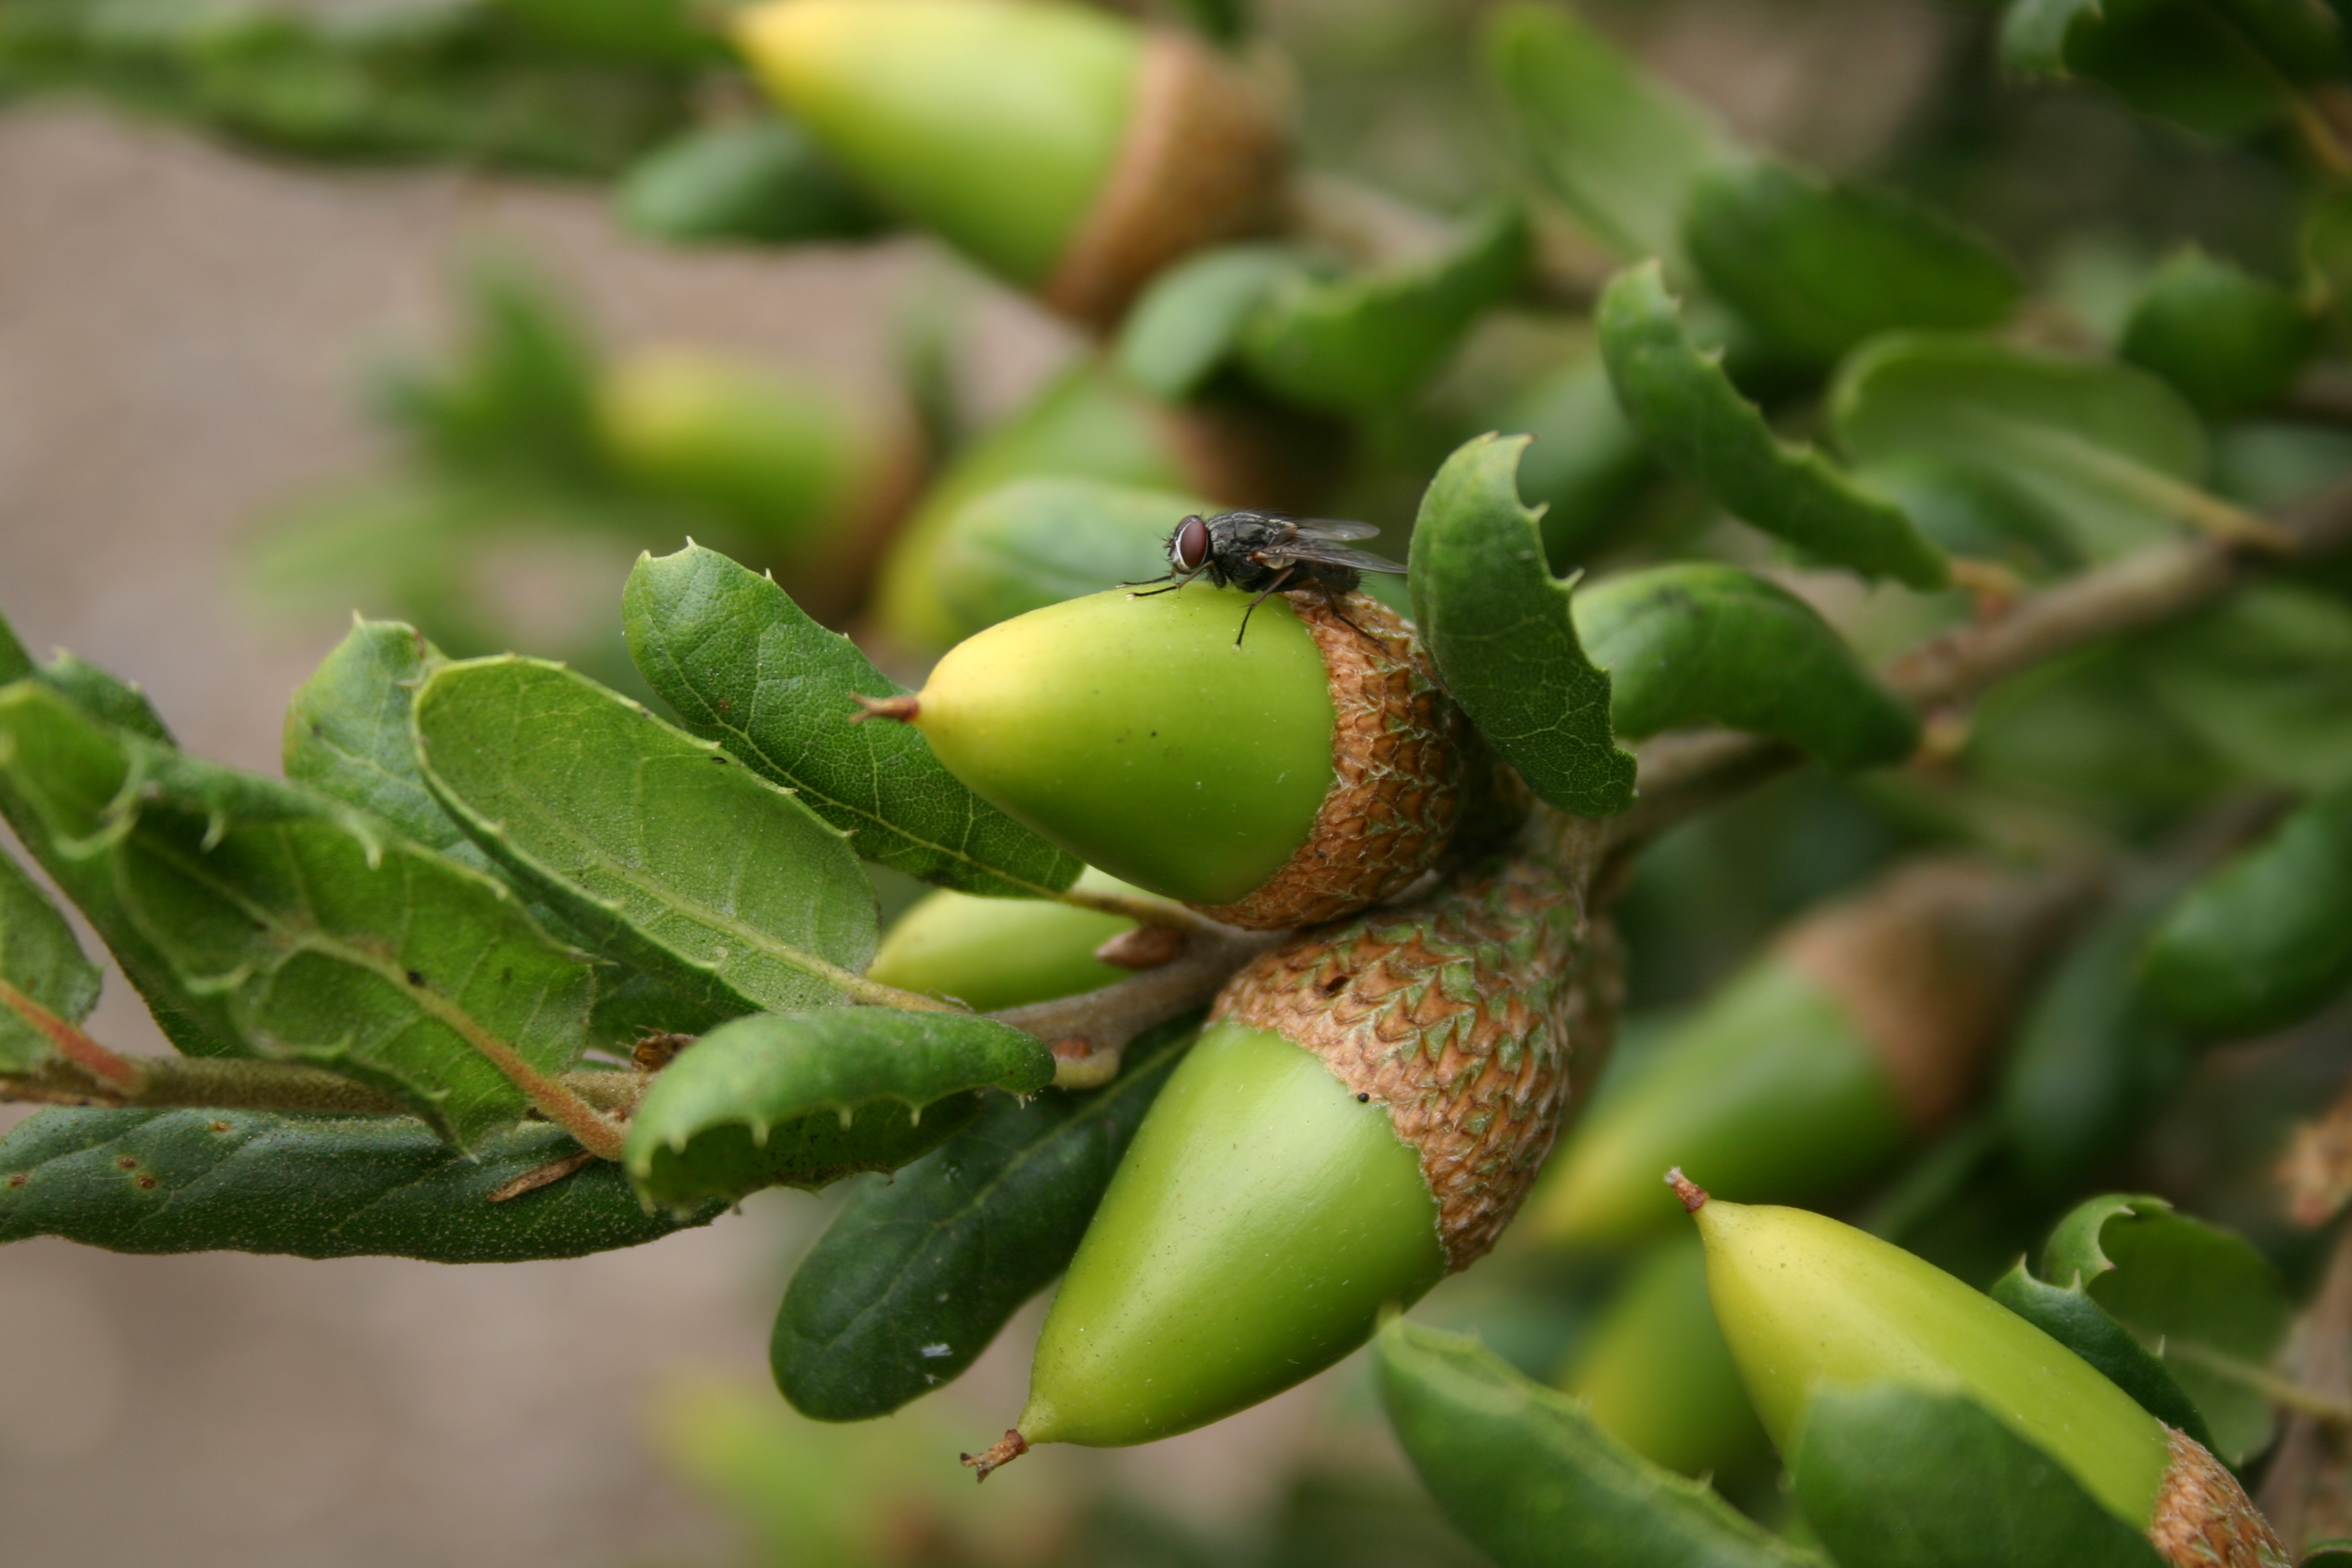 Macro of a fly, bright green acorns and oak leaves.